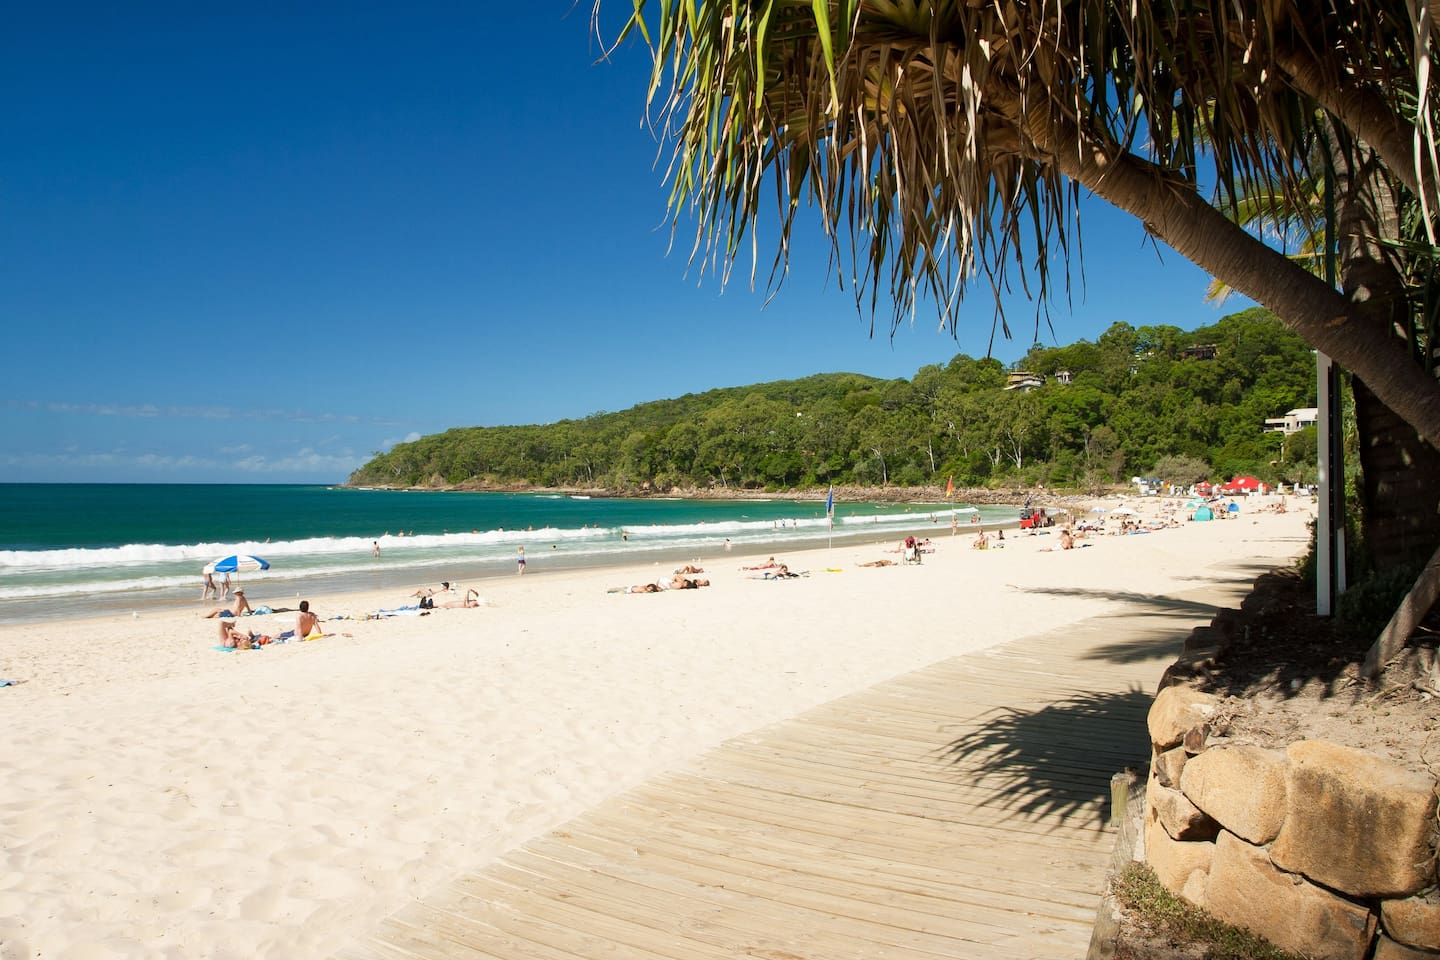 Noosa Main Beach Boardwalk. Backs onto Hasting Street, lots of great restaurants and bars